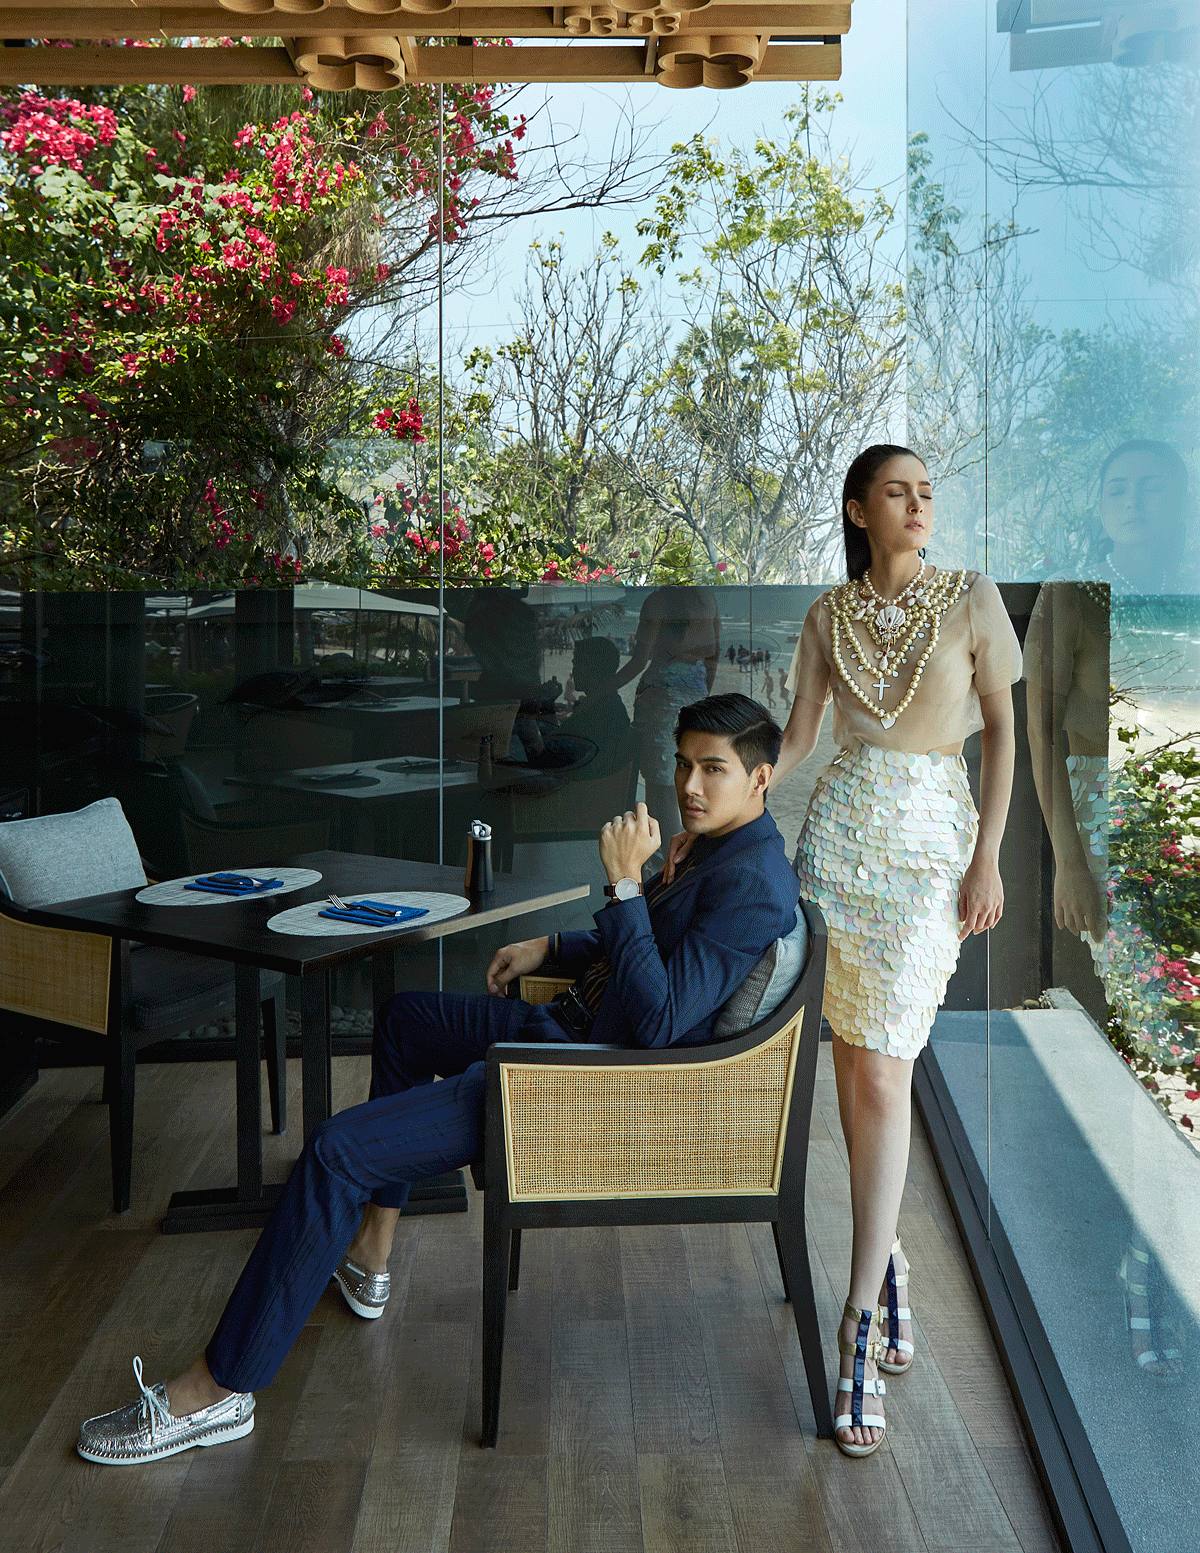 Mungkorn : clothes : Calvin Klein Platinum / shoes : Christian Louboutin  Nachad : clothes and accessories : 77th / shoes : Christian Luboutin